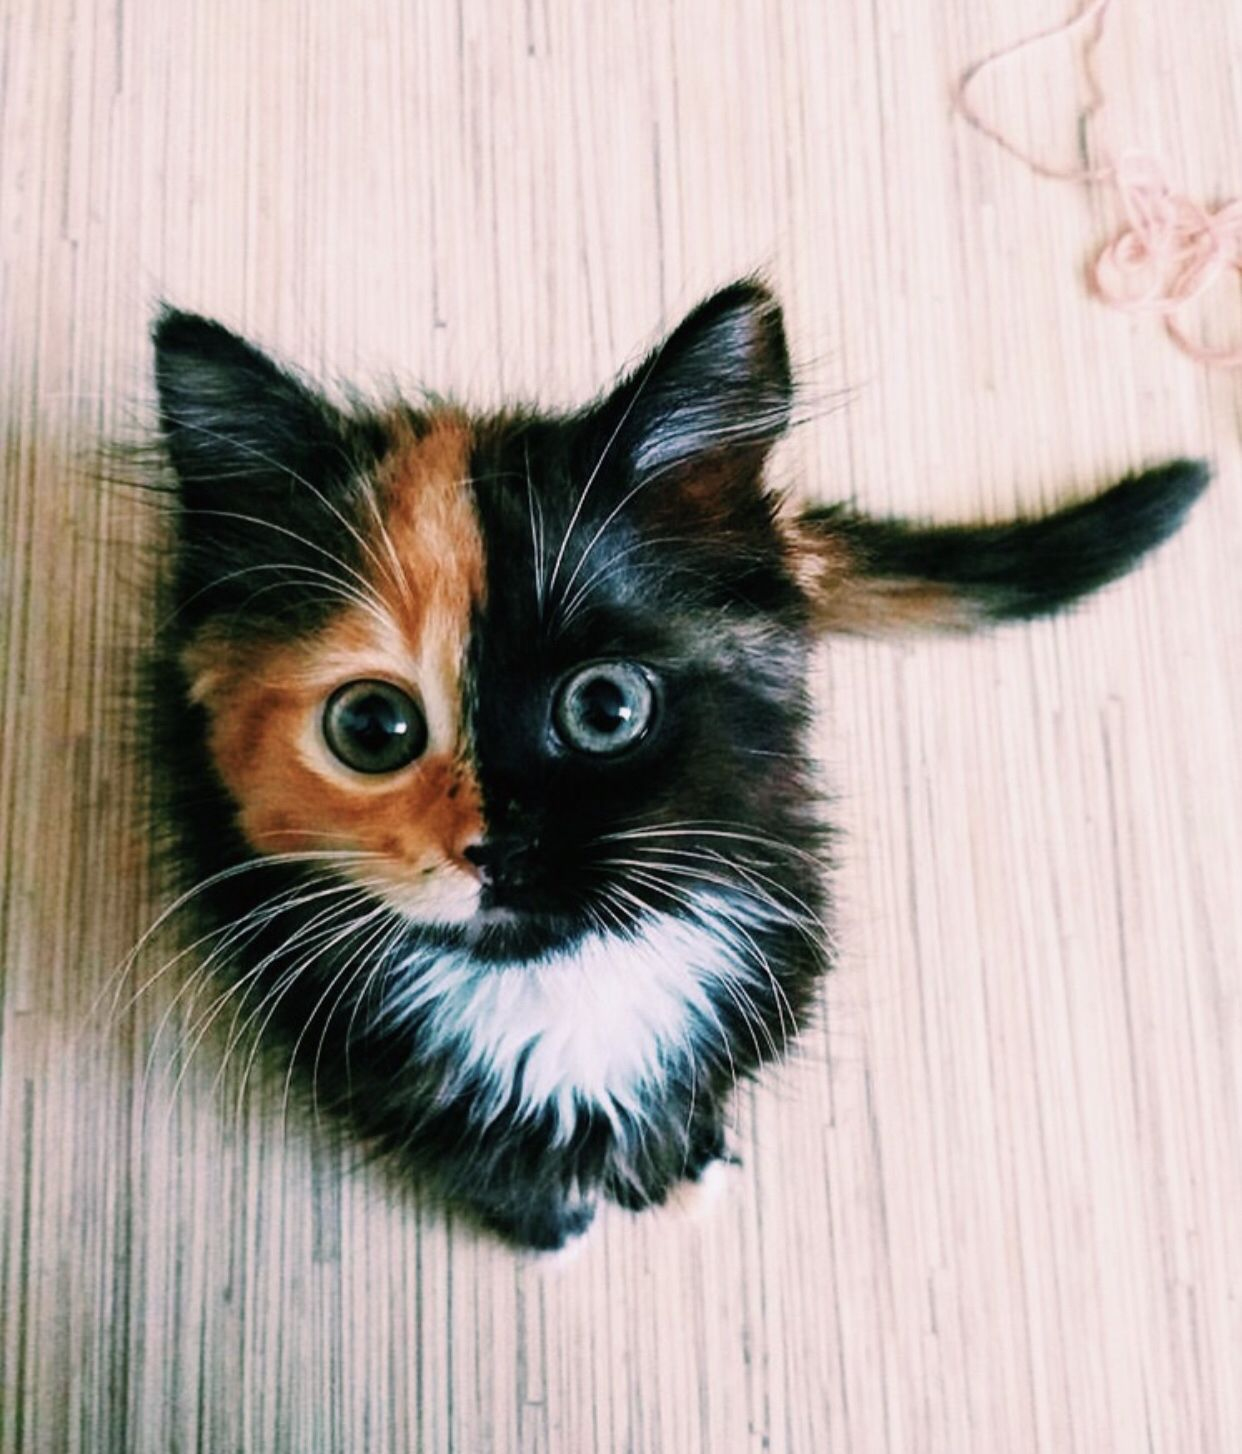 C H Y N A Cute Baby Animals Cats Kittens Cute Animals